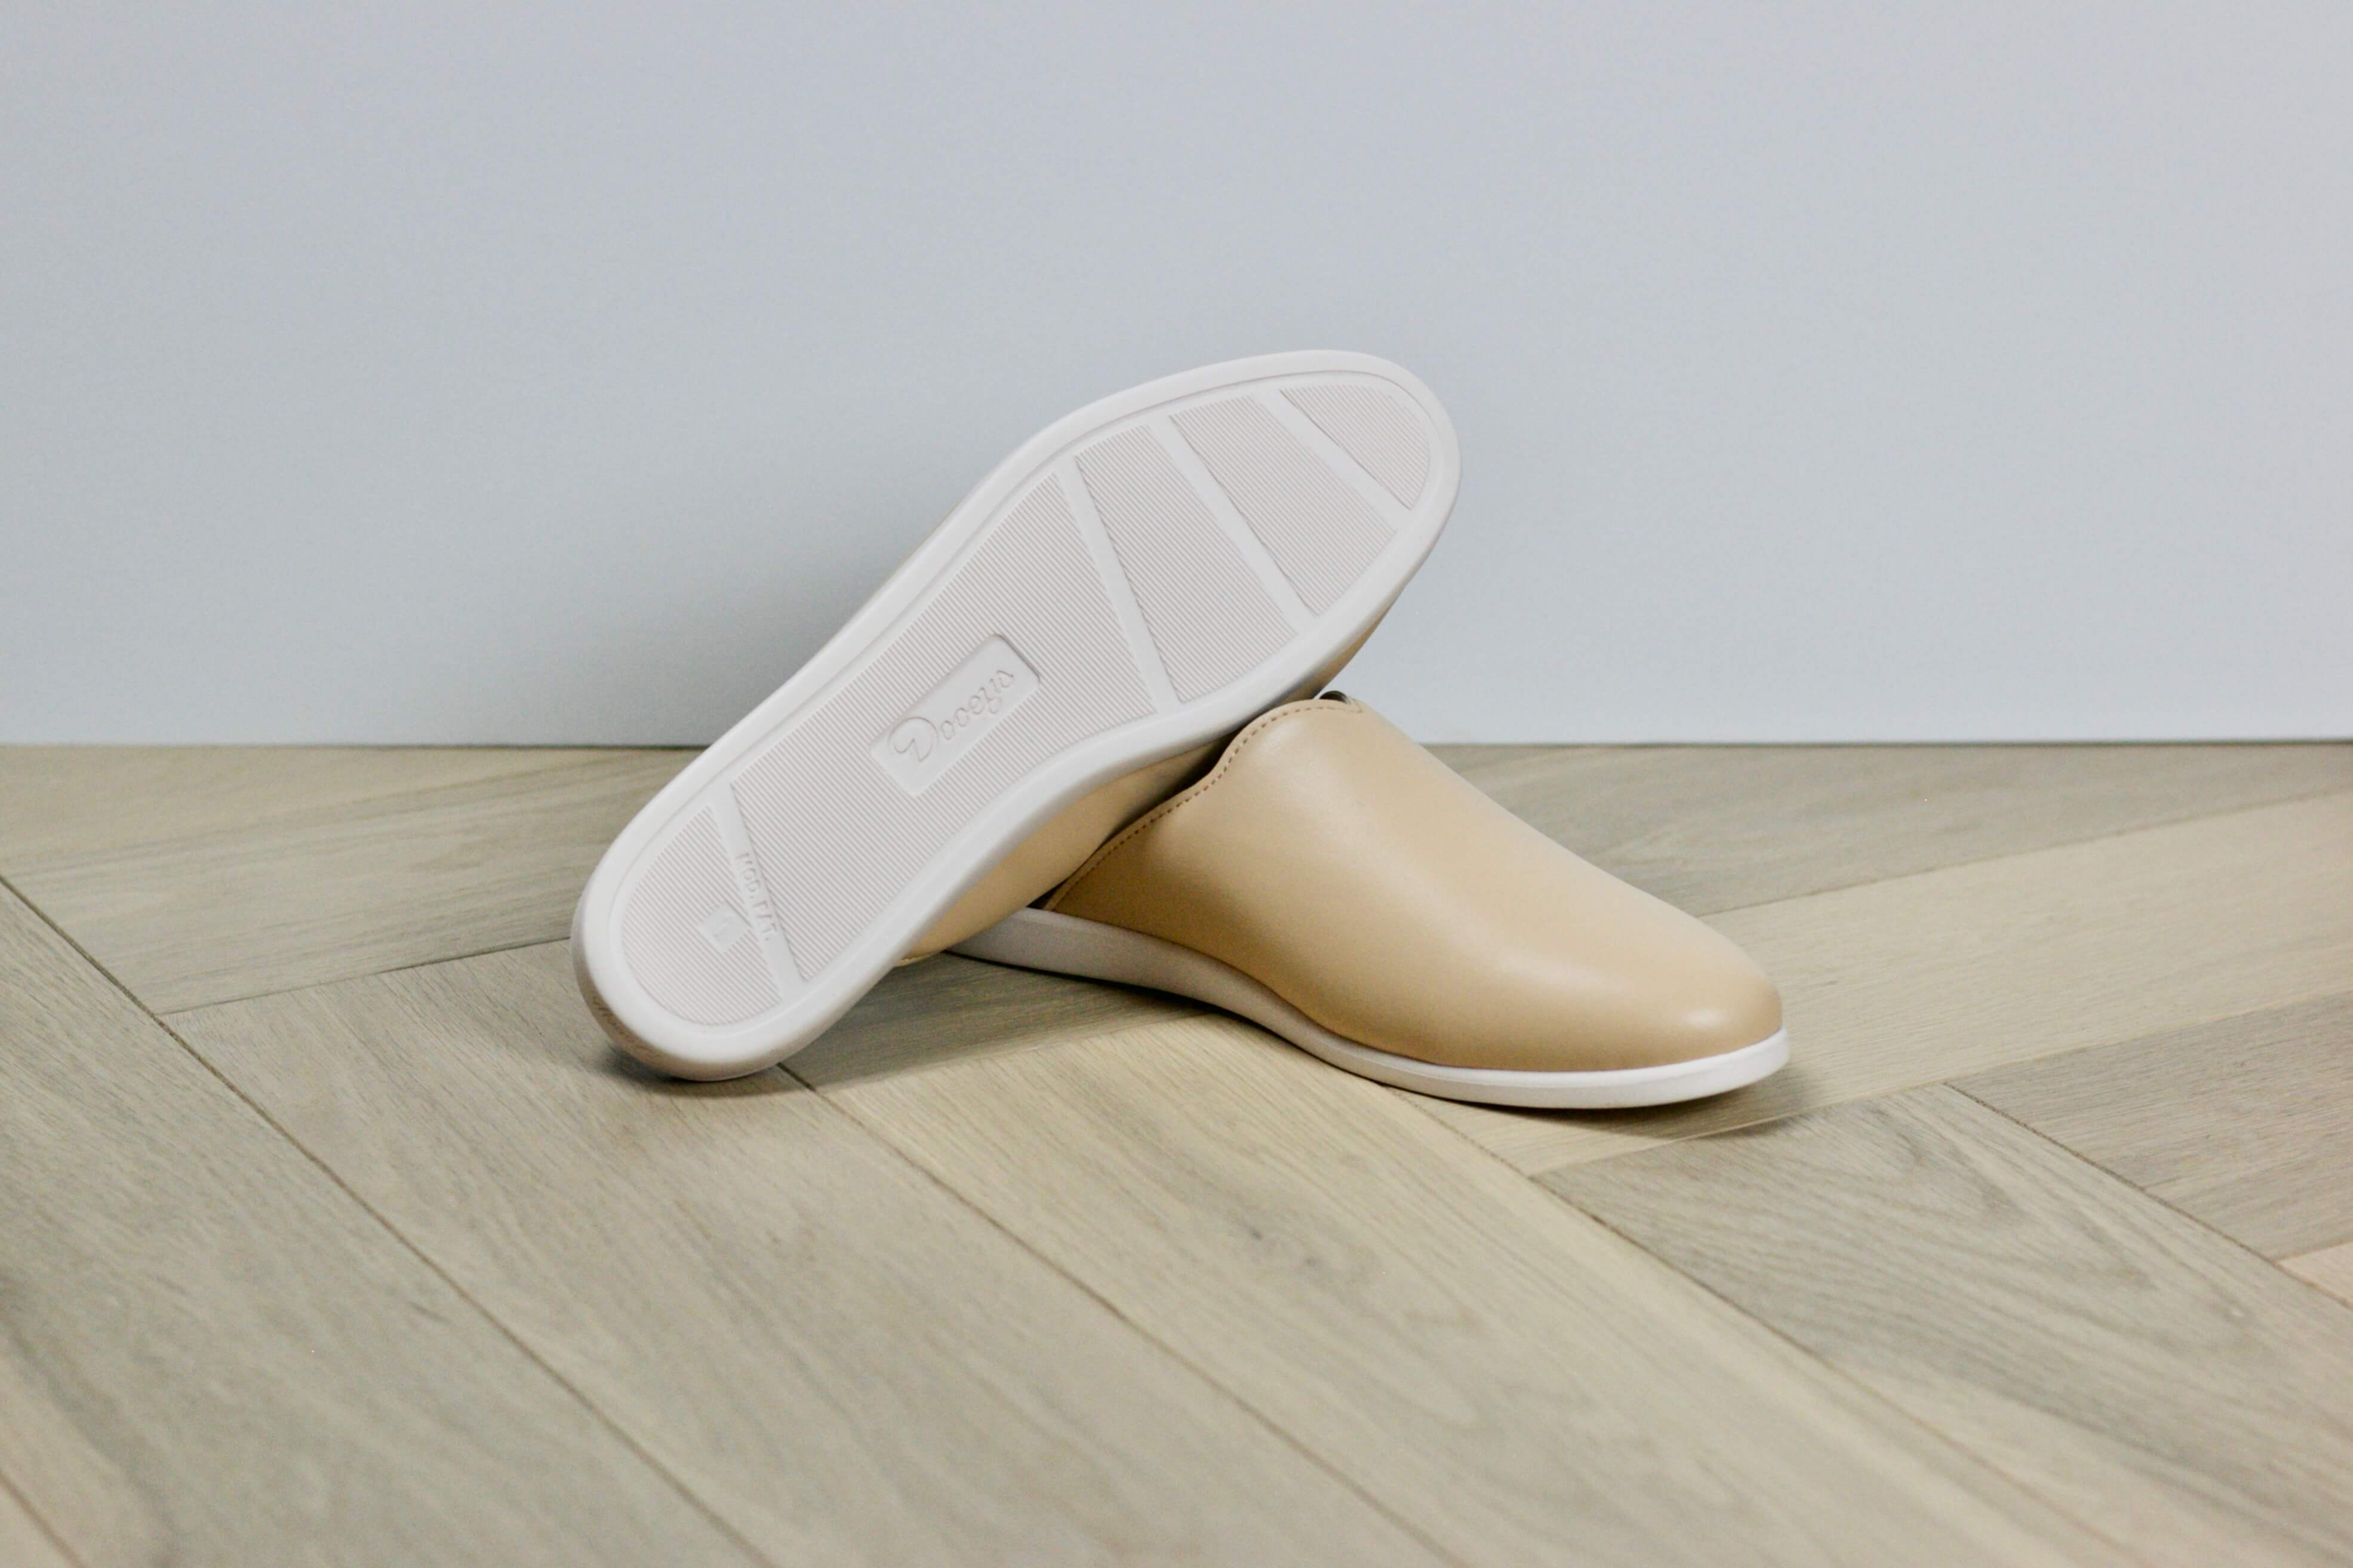 The Best House Shoes for Women - Honey Beige Mules